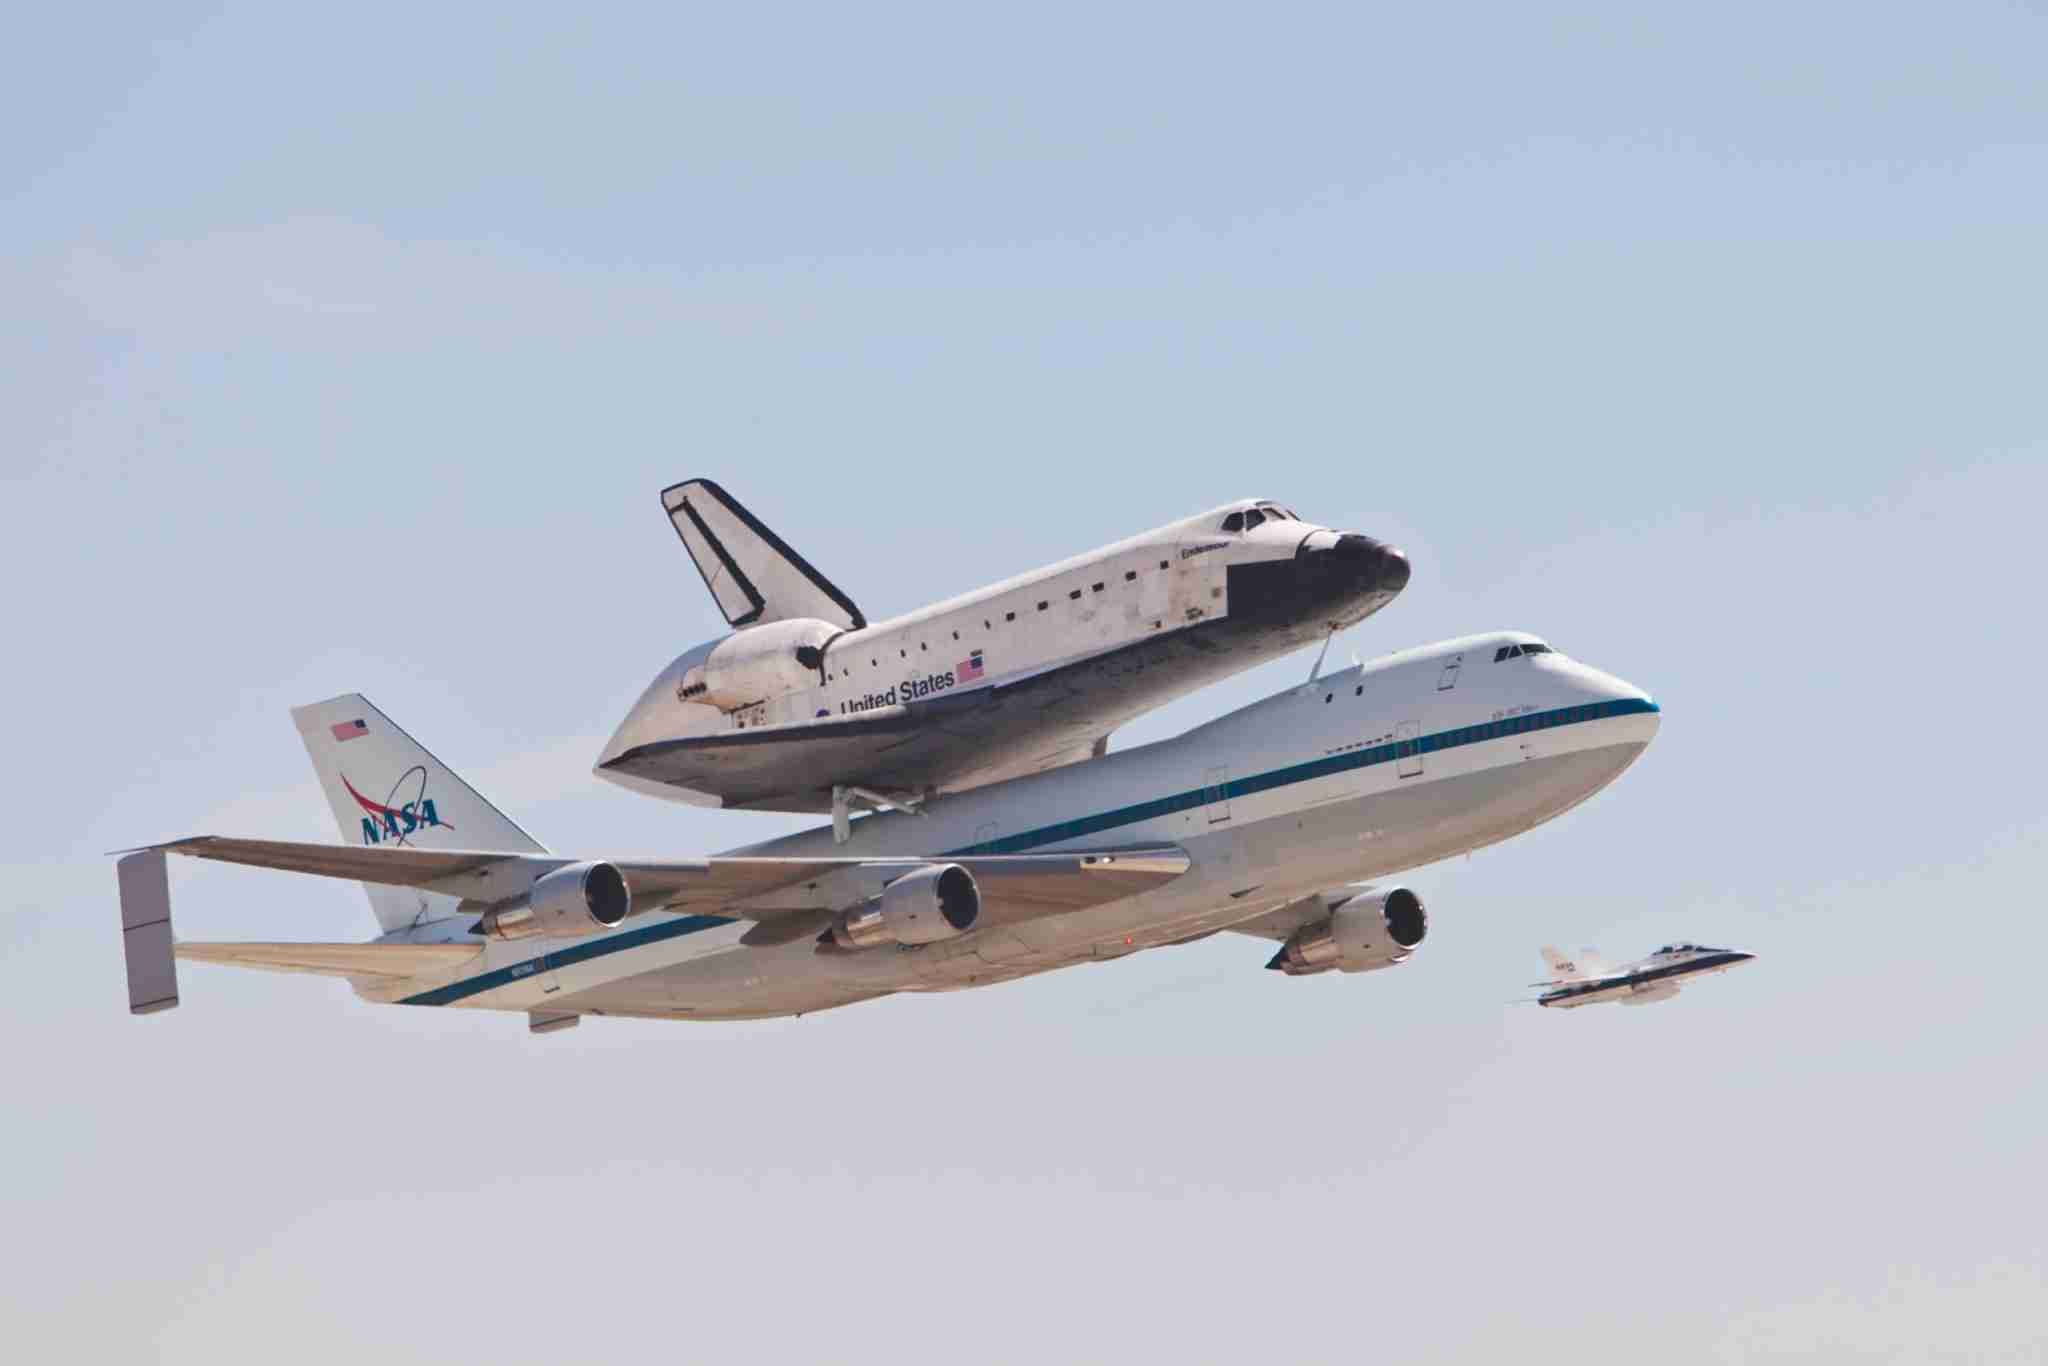 Space shuttle Endeavour, mounted aboard a Boeing 747 Shuttle Carrier Aircraft, landed at LAX. The shuttle will be removed from the 747 and placed on to a truck and moved to the California Science Center Oct. 17. The final flyover LAX. (Photo by Ted Soqui/Corbis via Getty Images)